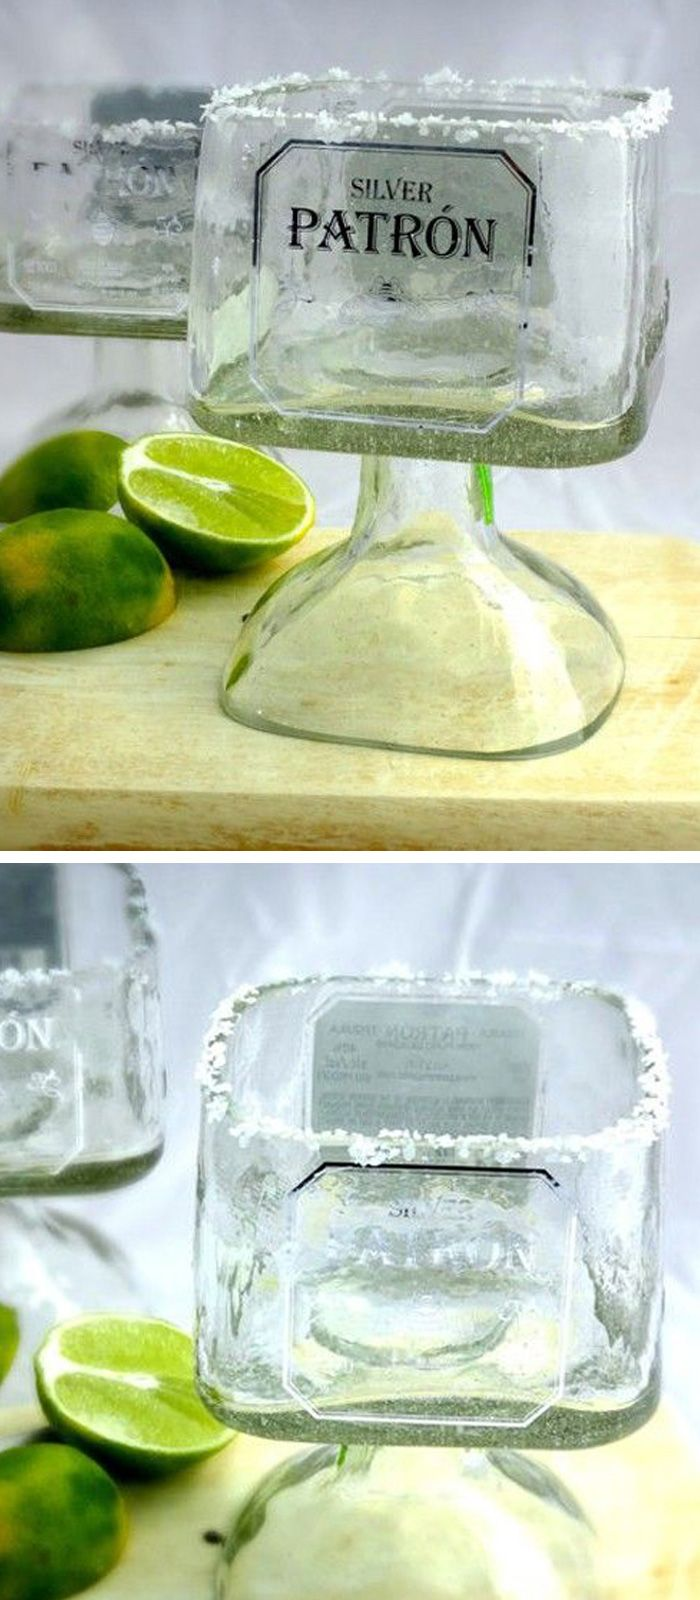 Patron tequila bottle recycled glass #product_design